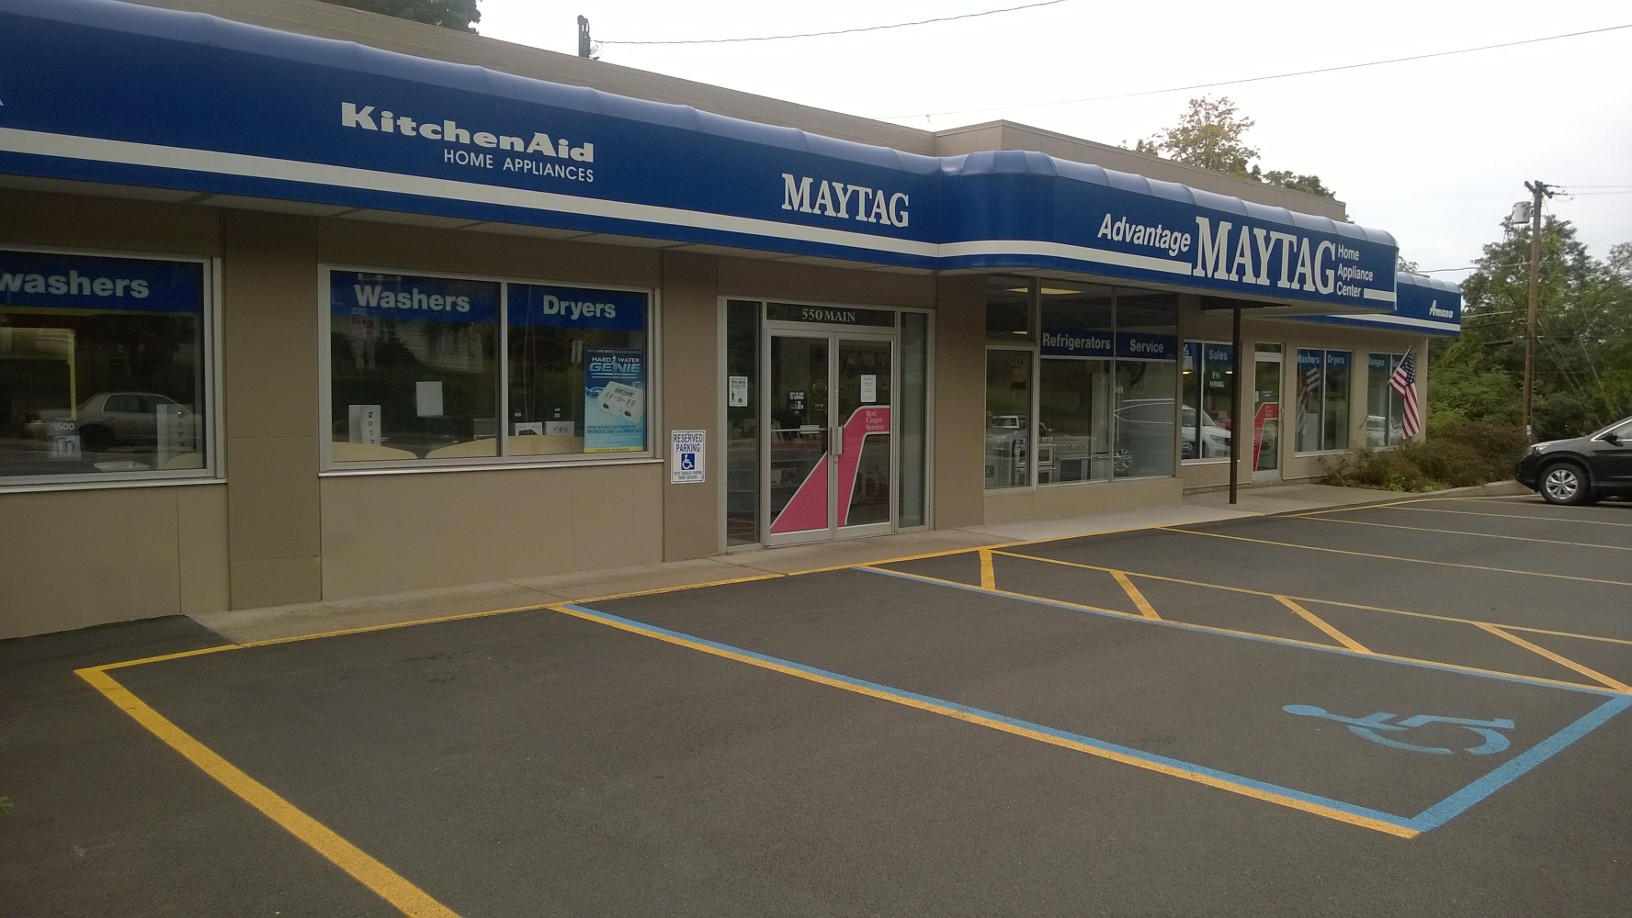 Advantage Maytag Home Appliance Center